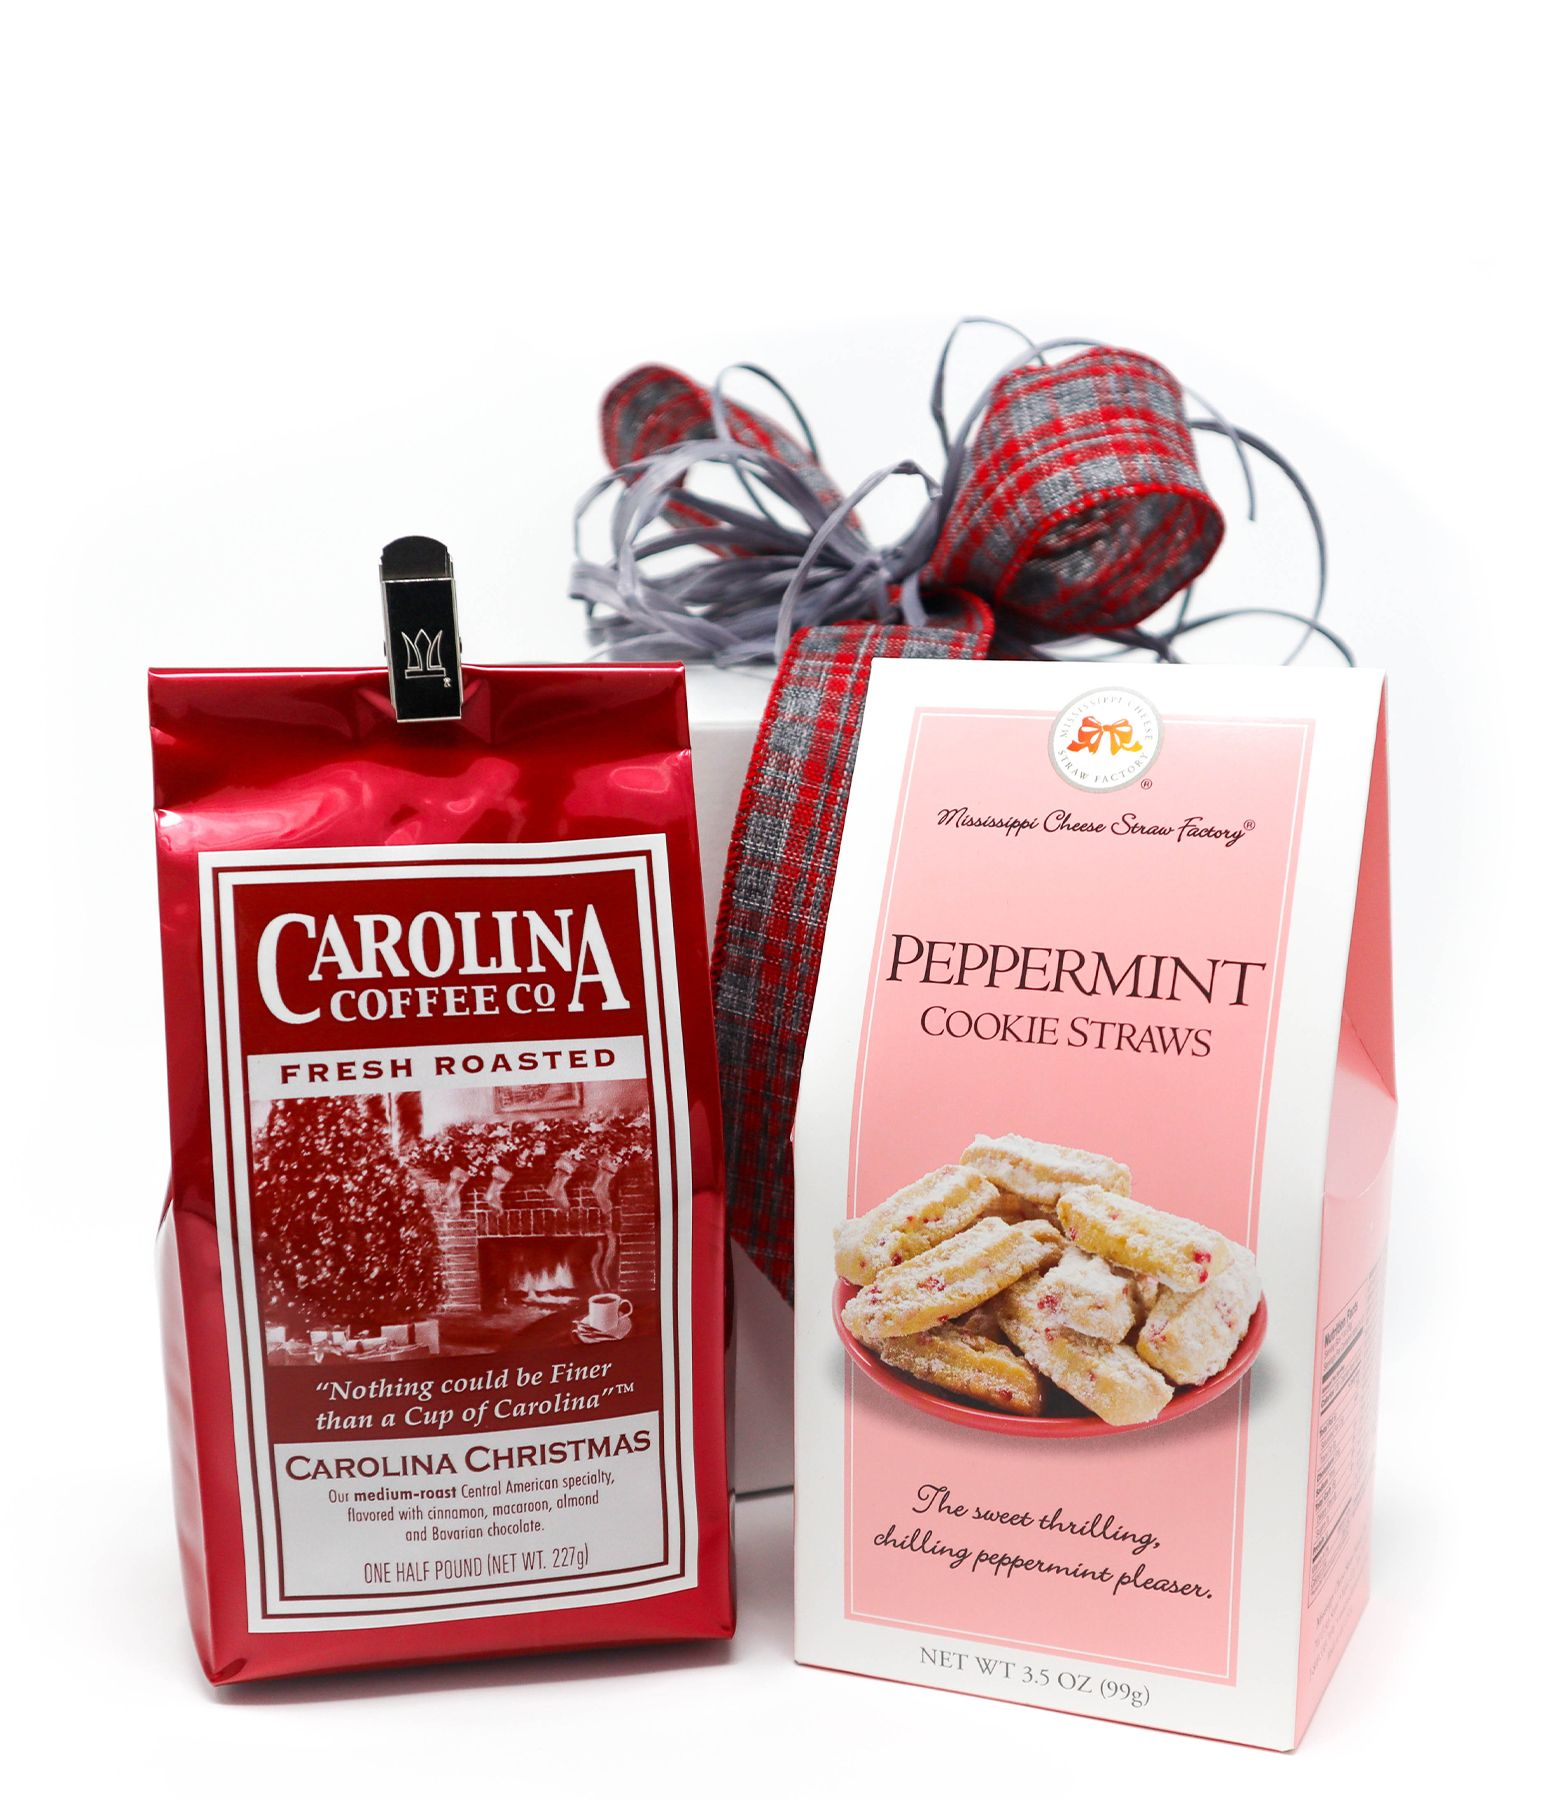 Carolina Coffee Coffee and Peppermint Cookie Straws